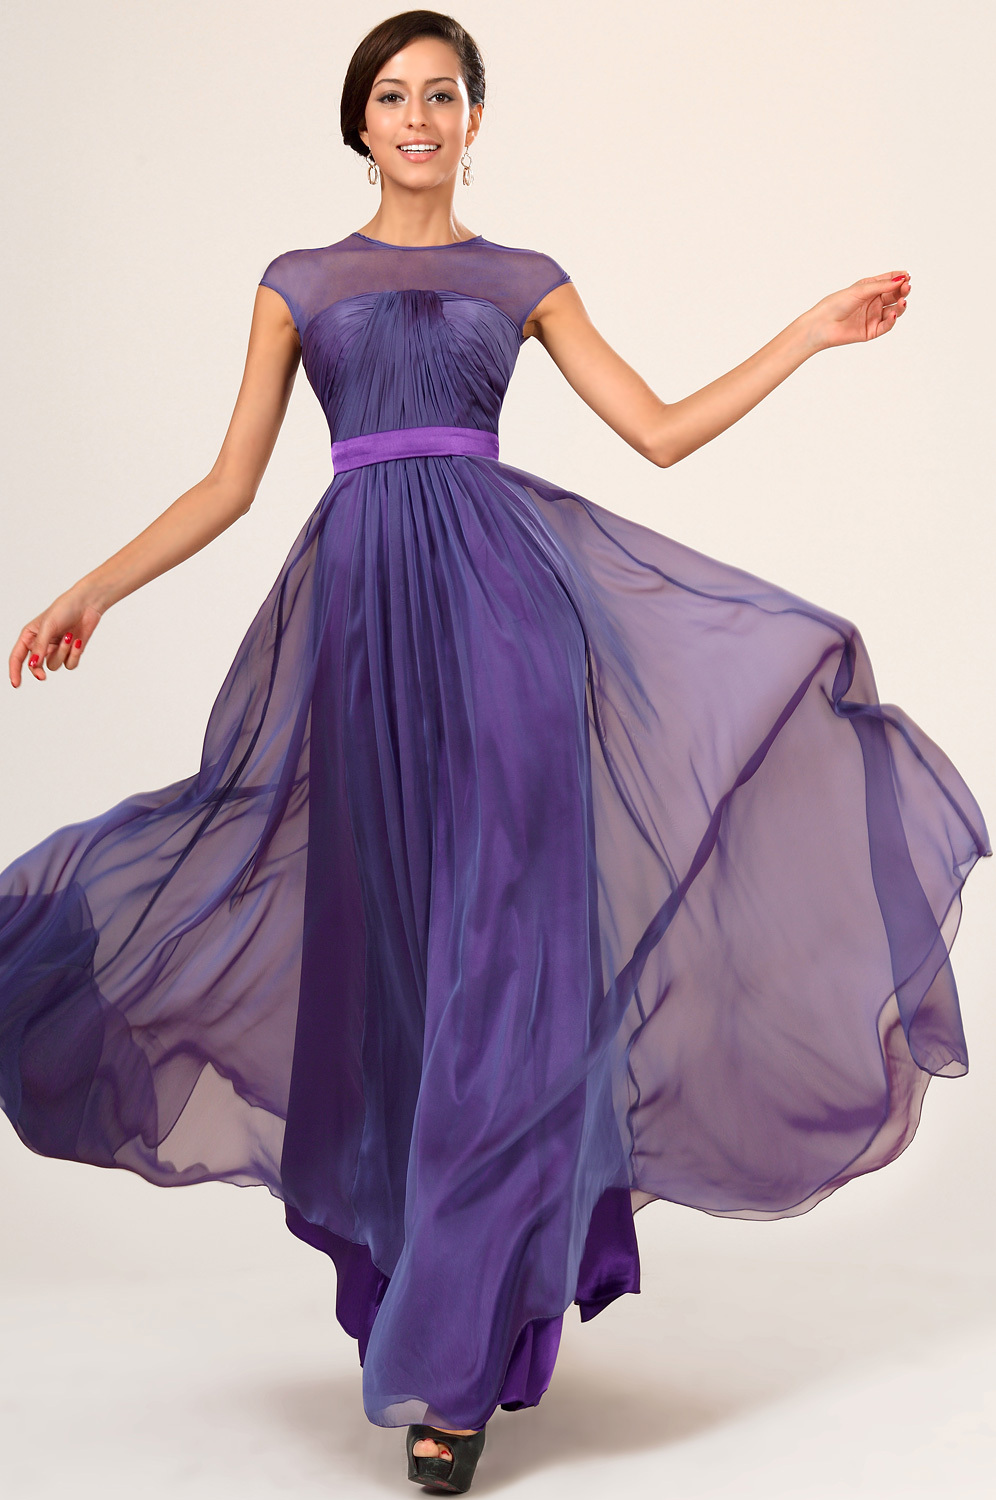 Dark purple dresses bridesmaids image collections braidsmaid dark purple bridesmaid gowns with sleeves fashion dresses dark purple bridesmaid gowns with sleeves ombrellifo image ombrellifo Image collections